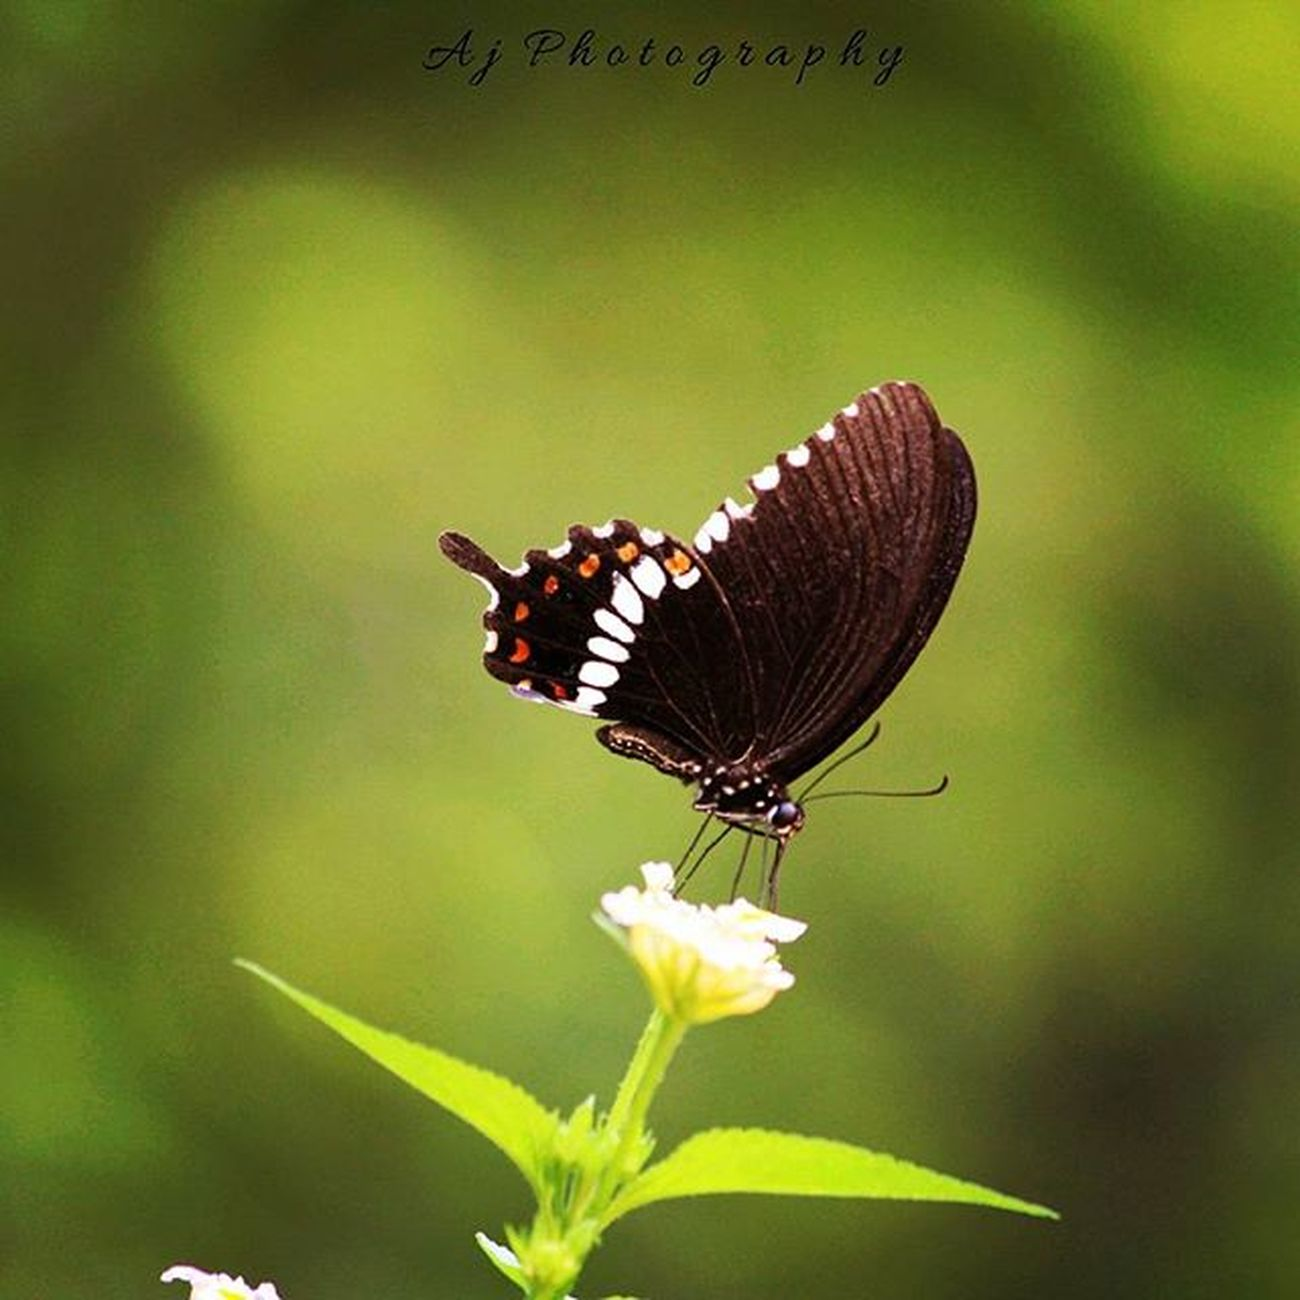 Everyone is like a butterfly, they start out ugly and awkward and then morph into beautiful graceful butterflies that everyone loves. Nature Naturelovers Natureaddict Butterfly Green Natureporn Naturephotography Natgeo Canonforever Photographyislife Passion Canon Canonuser Instapic Instaedit Instalove Instalike Instagood Instadaily L4l Like4like Likeforlike Follow4follow Photooftheday Love loveit peace tagsforlikes tbt tbh